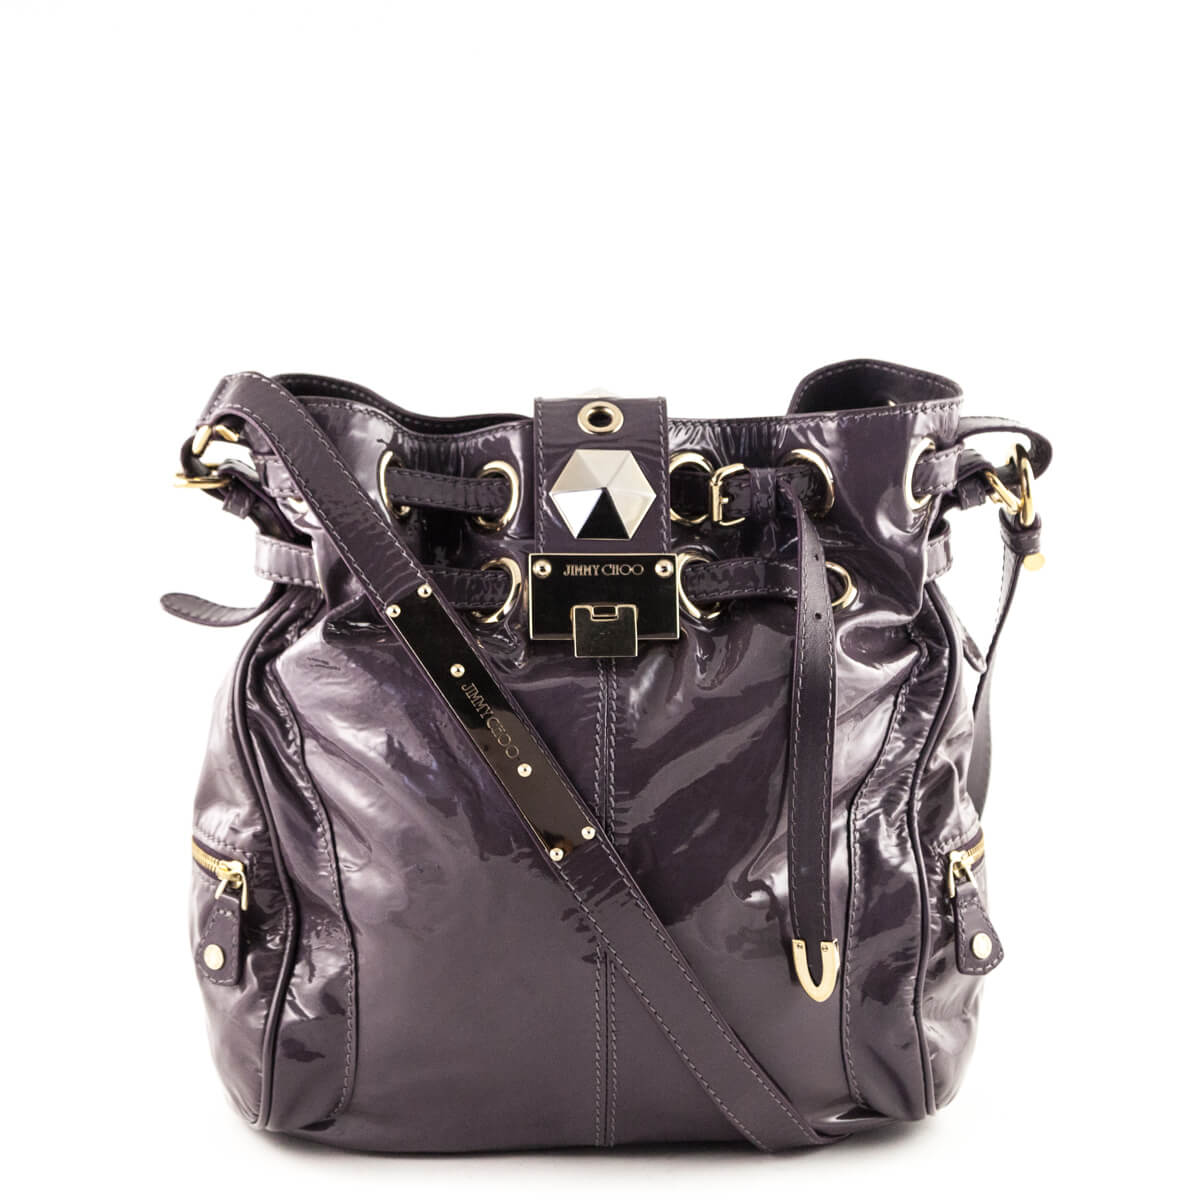 744cab0bb87 Jimmy Choo Lilac Patent Leather Ramona Bag - LOVE that BAG - Preowned  Authentic Designer Handbags ...